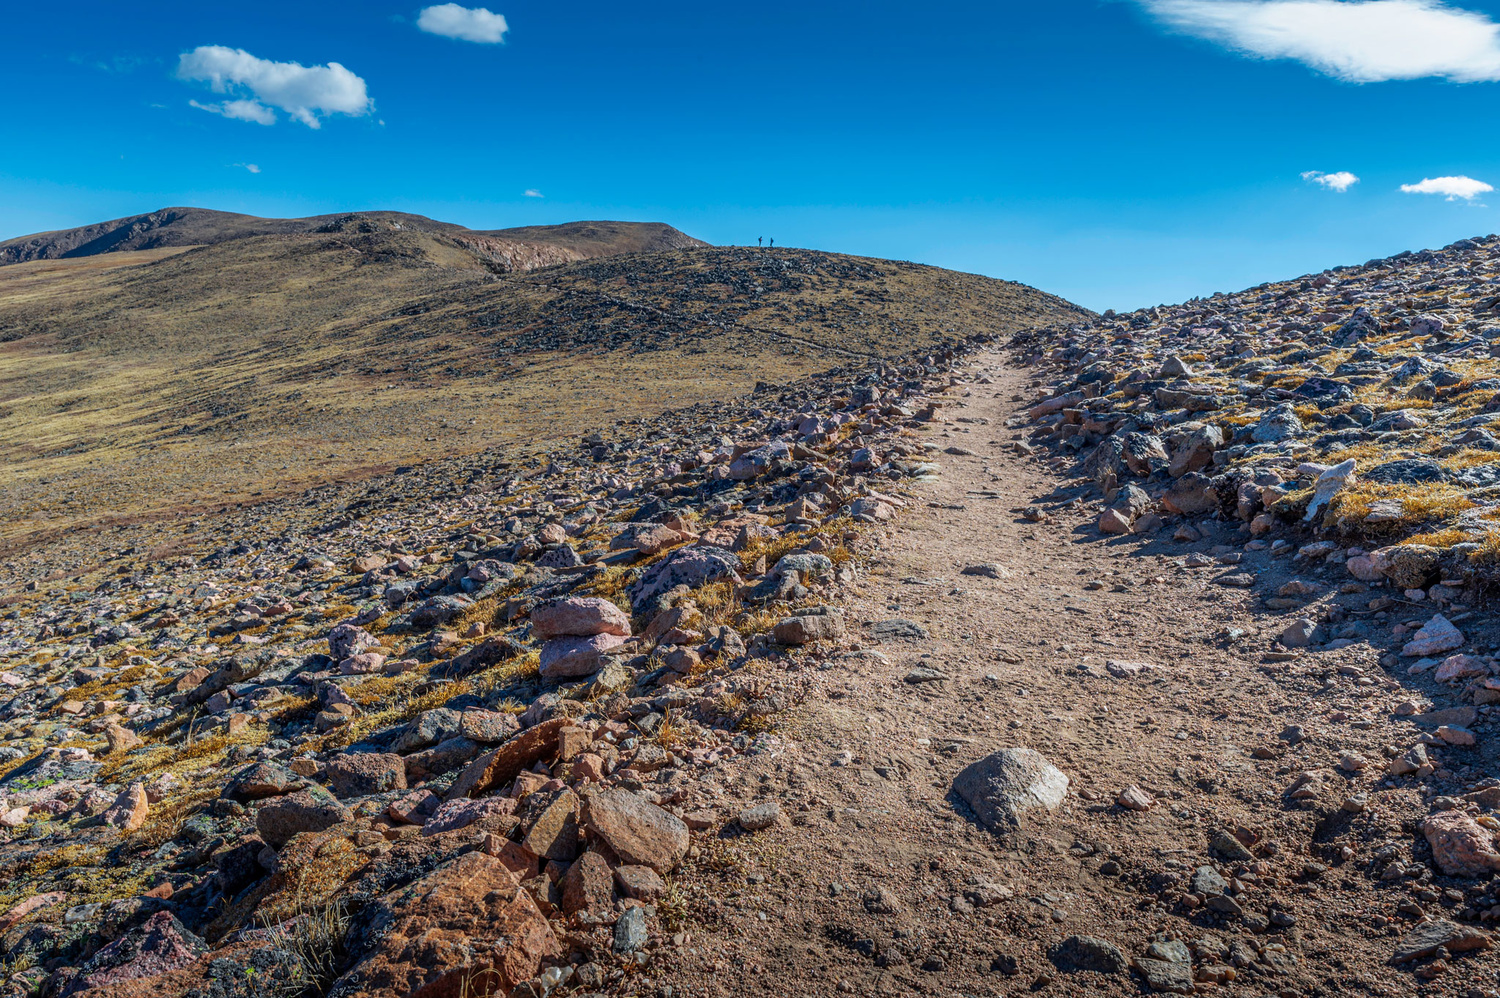 Hiking Trail in Colorado by Dave Spates